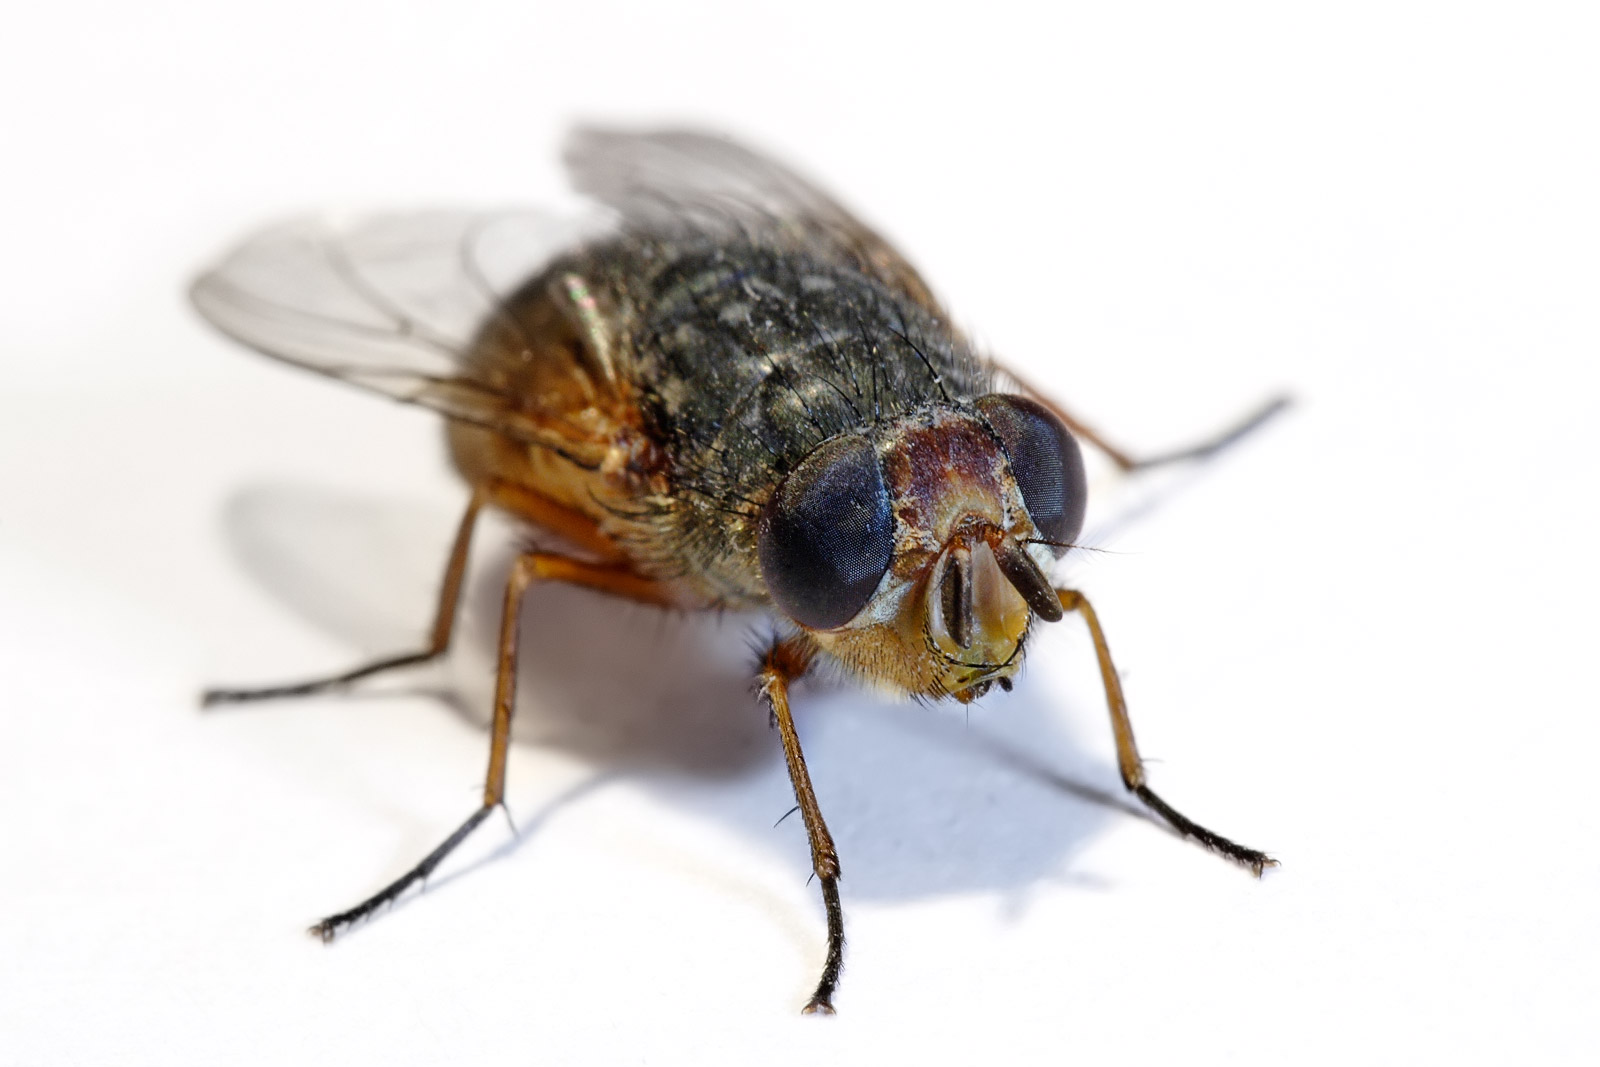 A housefly can live for very short time